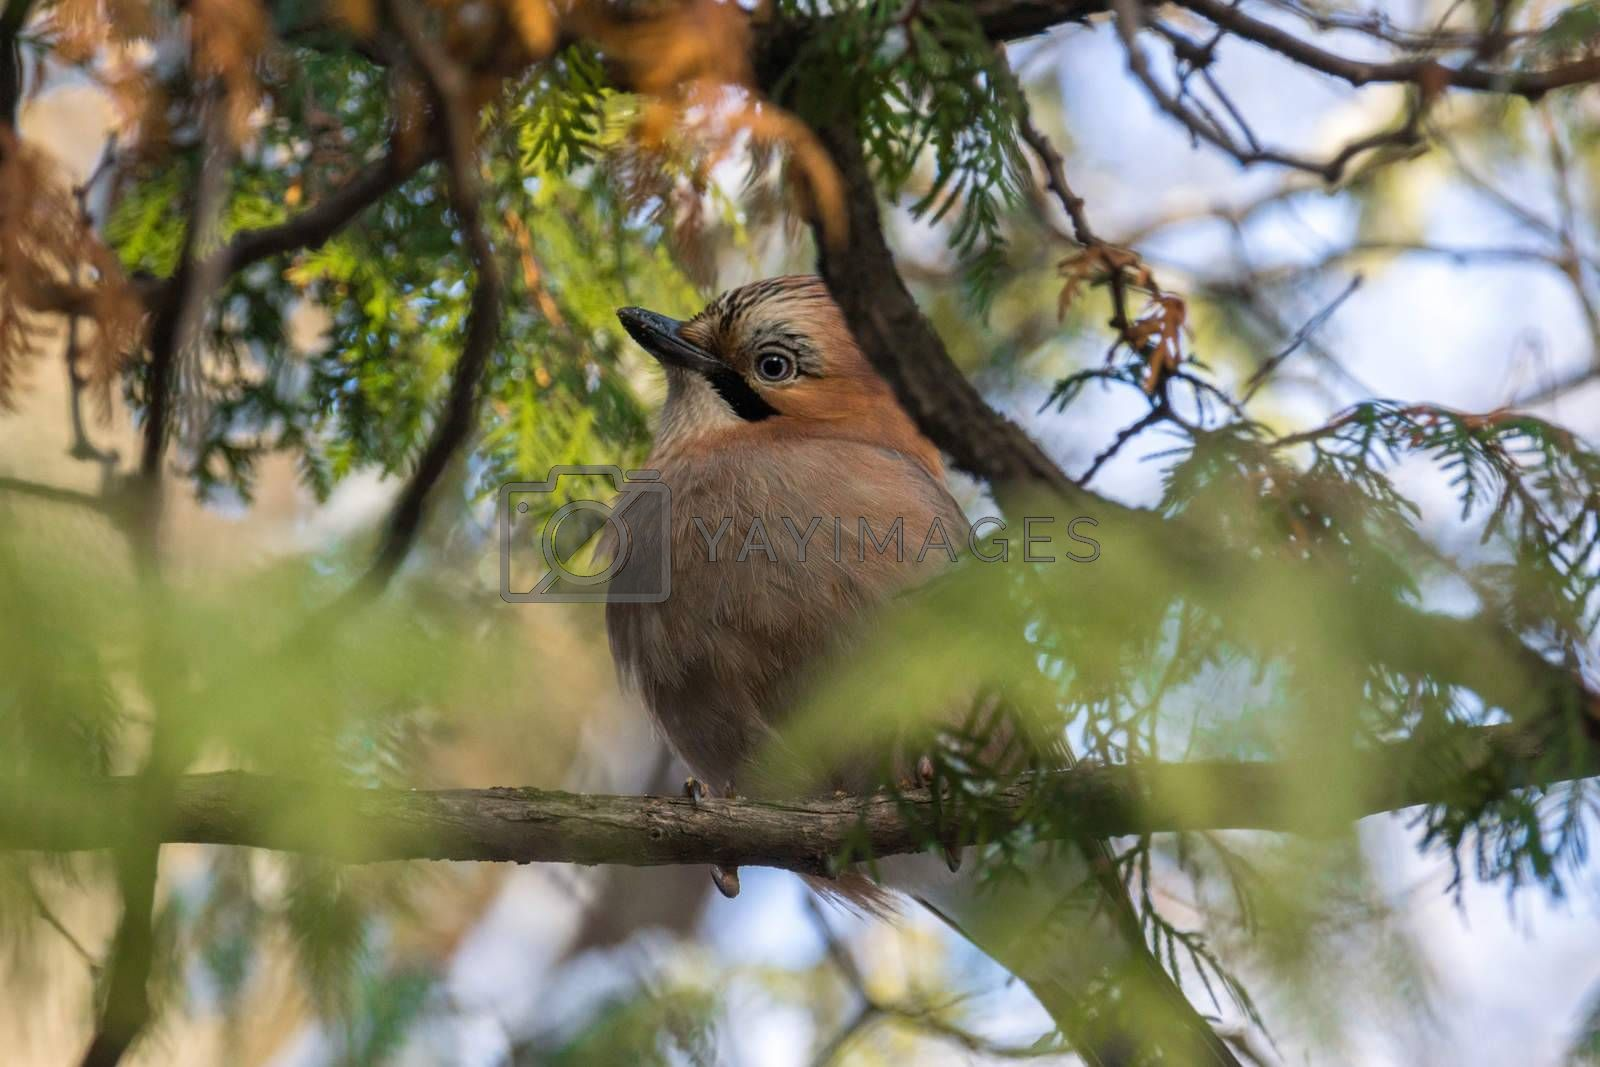 The photo shows the jay on the branches